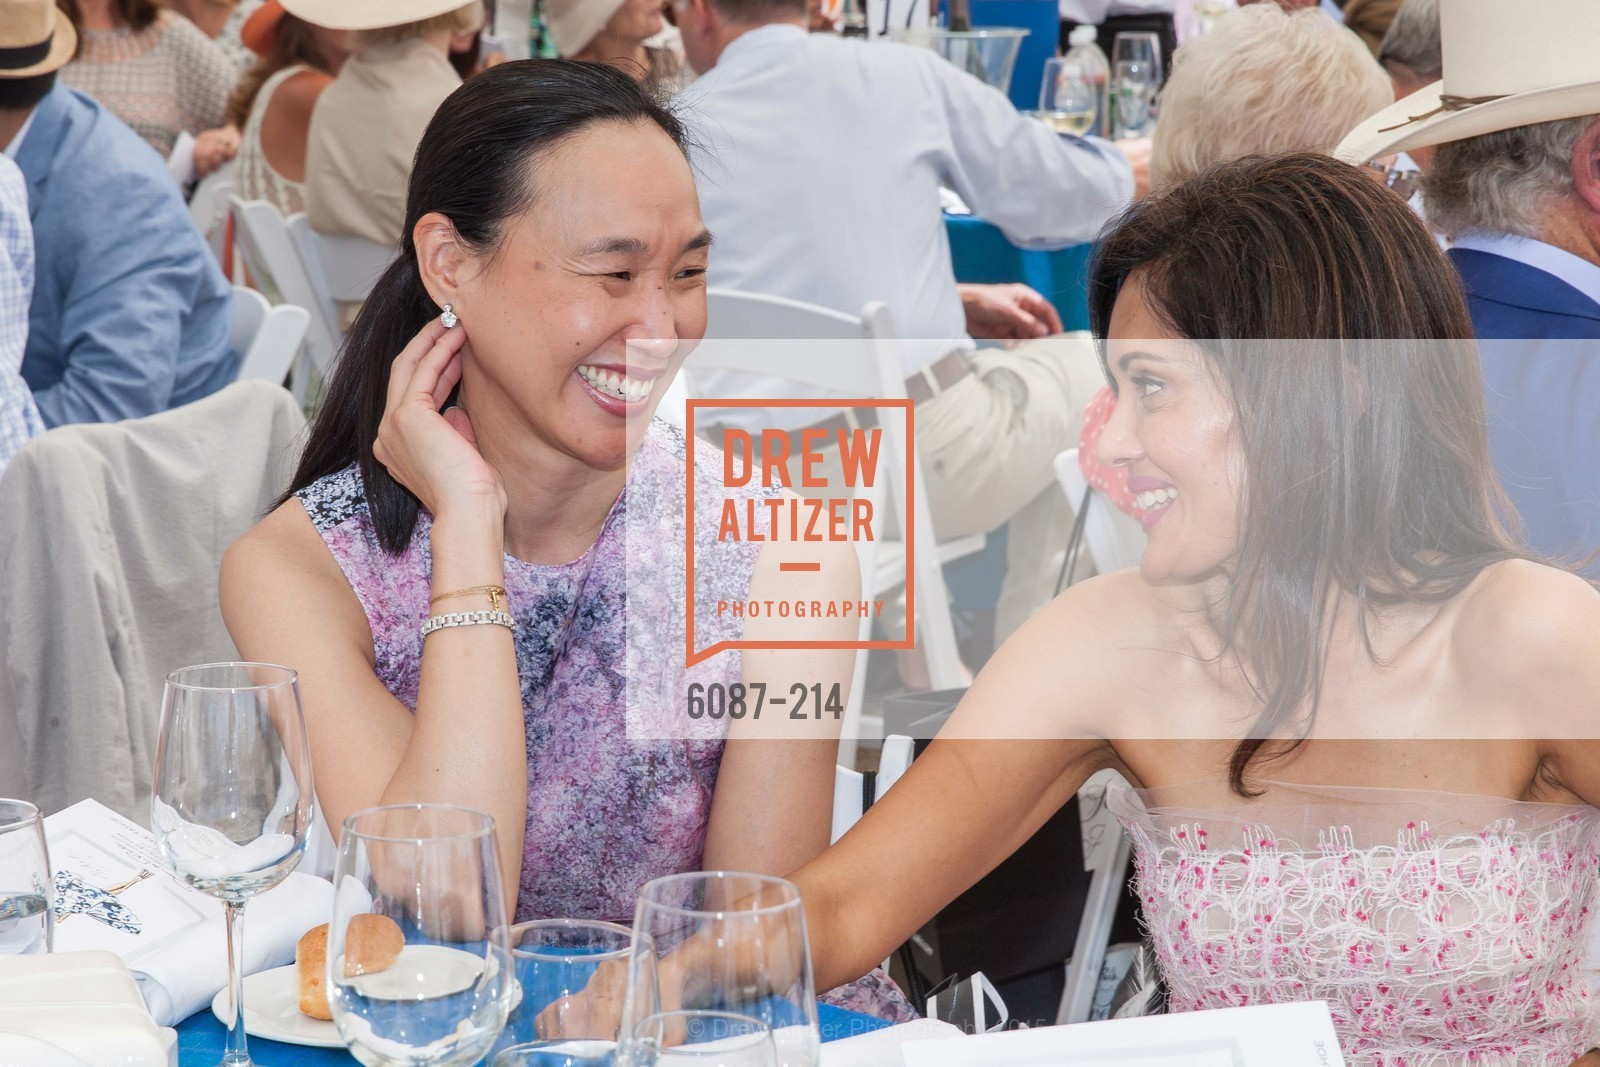 Carolyn Chang, Komal Shah, Saks Fifth Avenue and The League to Save Lake Tahoe Present Fashion on the Lake, Private Residence, August 1st, 2015,Drew Altizer, Drew Altizer Photography, full-service agency, private events, San Francisco photographer, photographer california